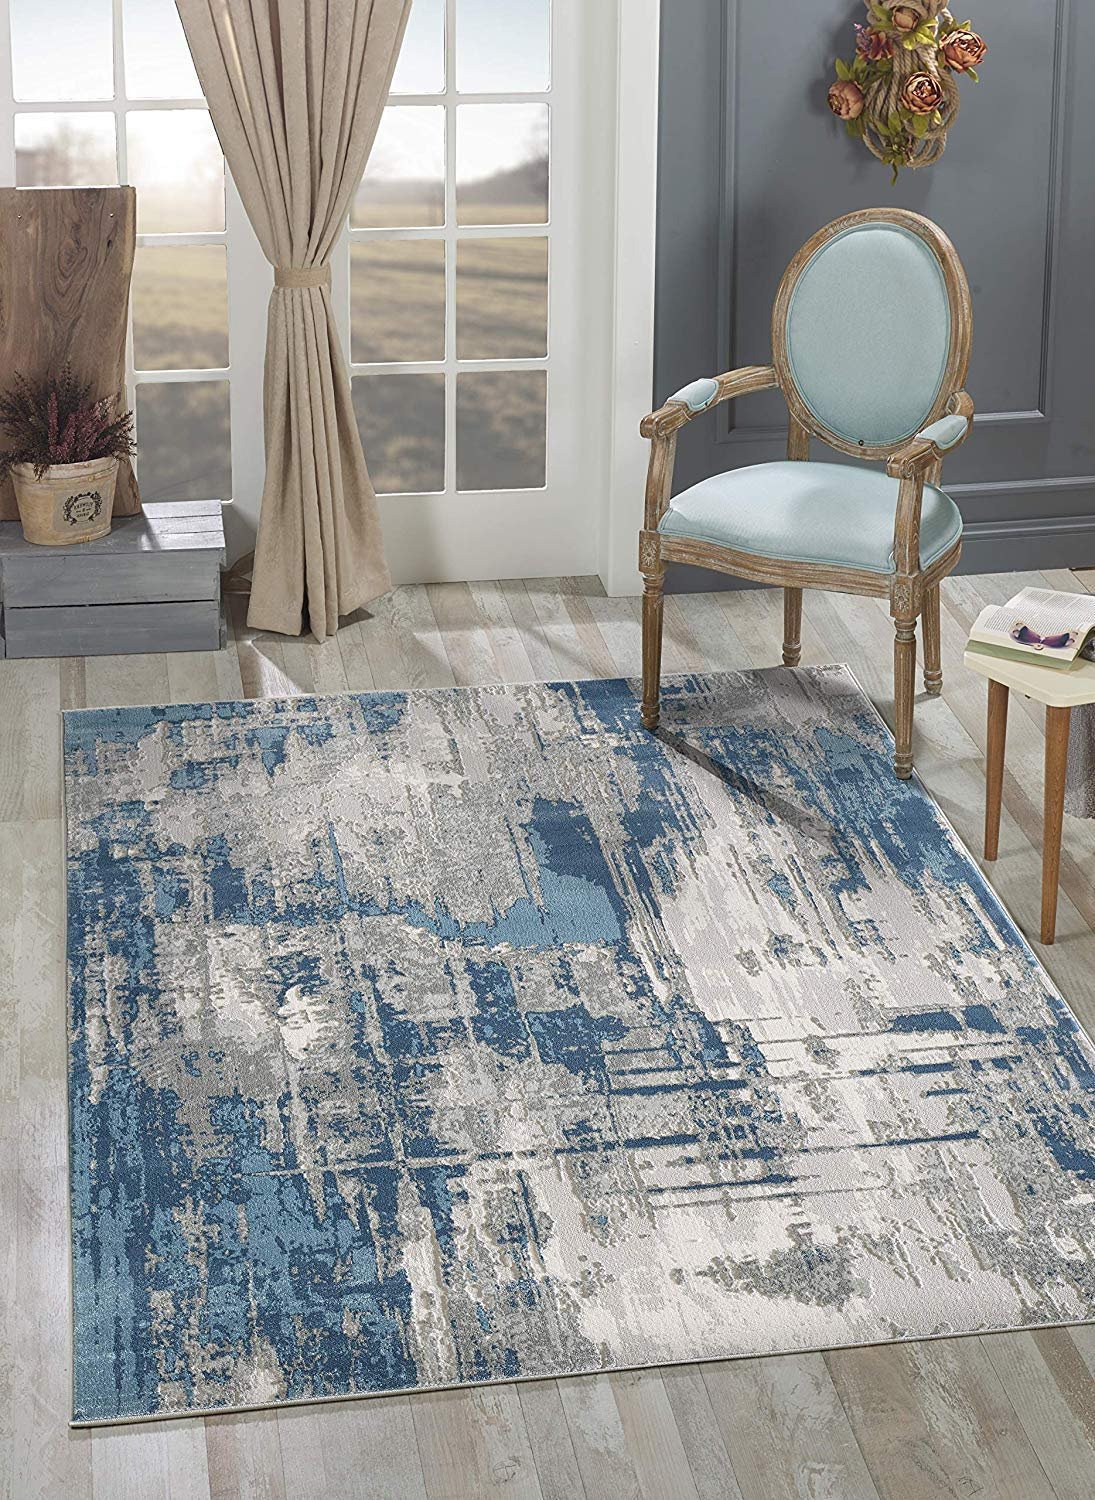 ABANI Abstract Art Pattern Modern Large Area Rug - 8x10, Polypropylene/Polyester, Turkish, Machine Made, Blue & Grey, Vista Collection (VST130A-8)